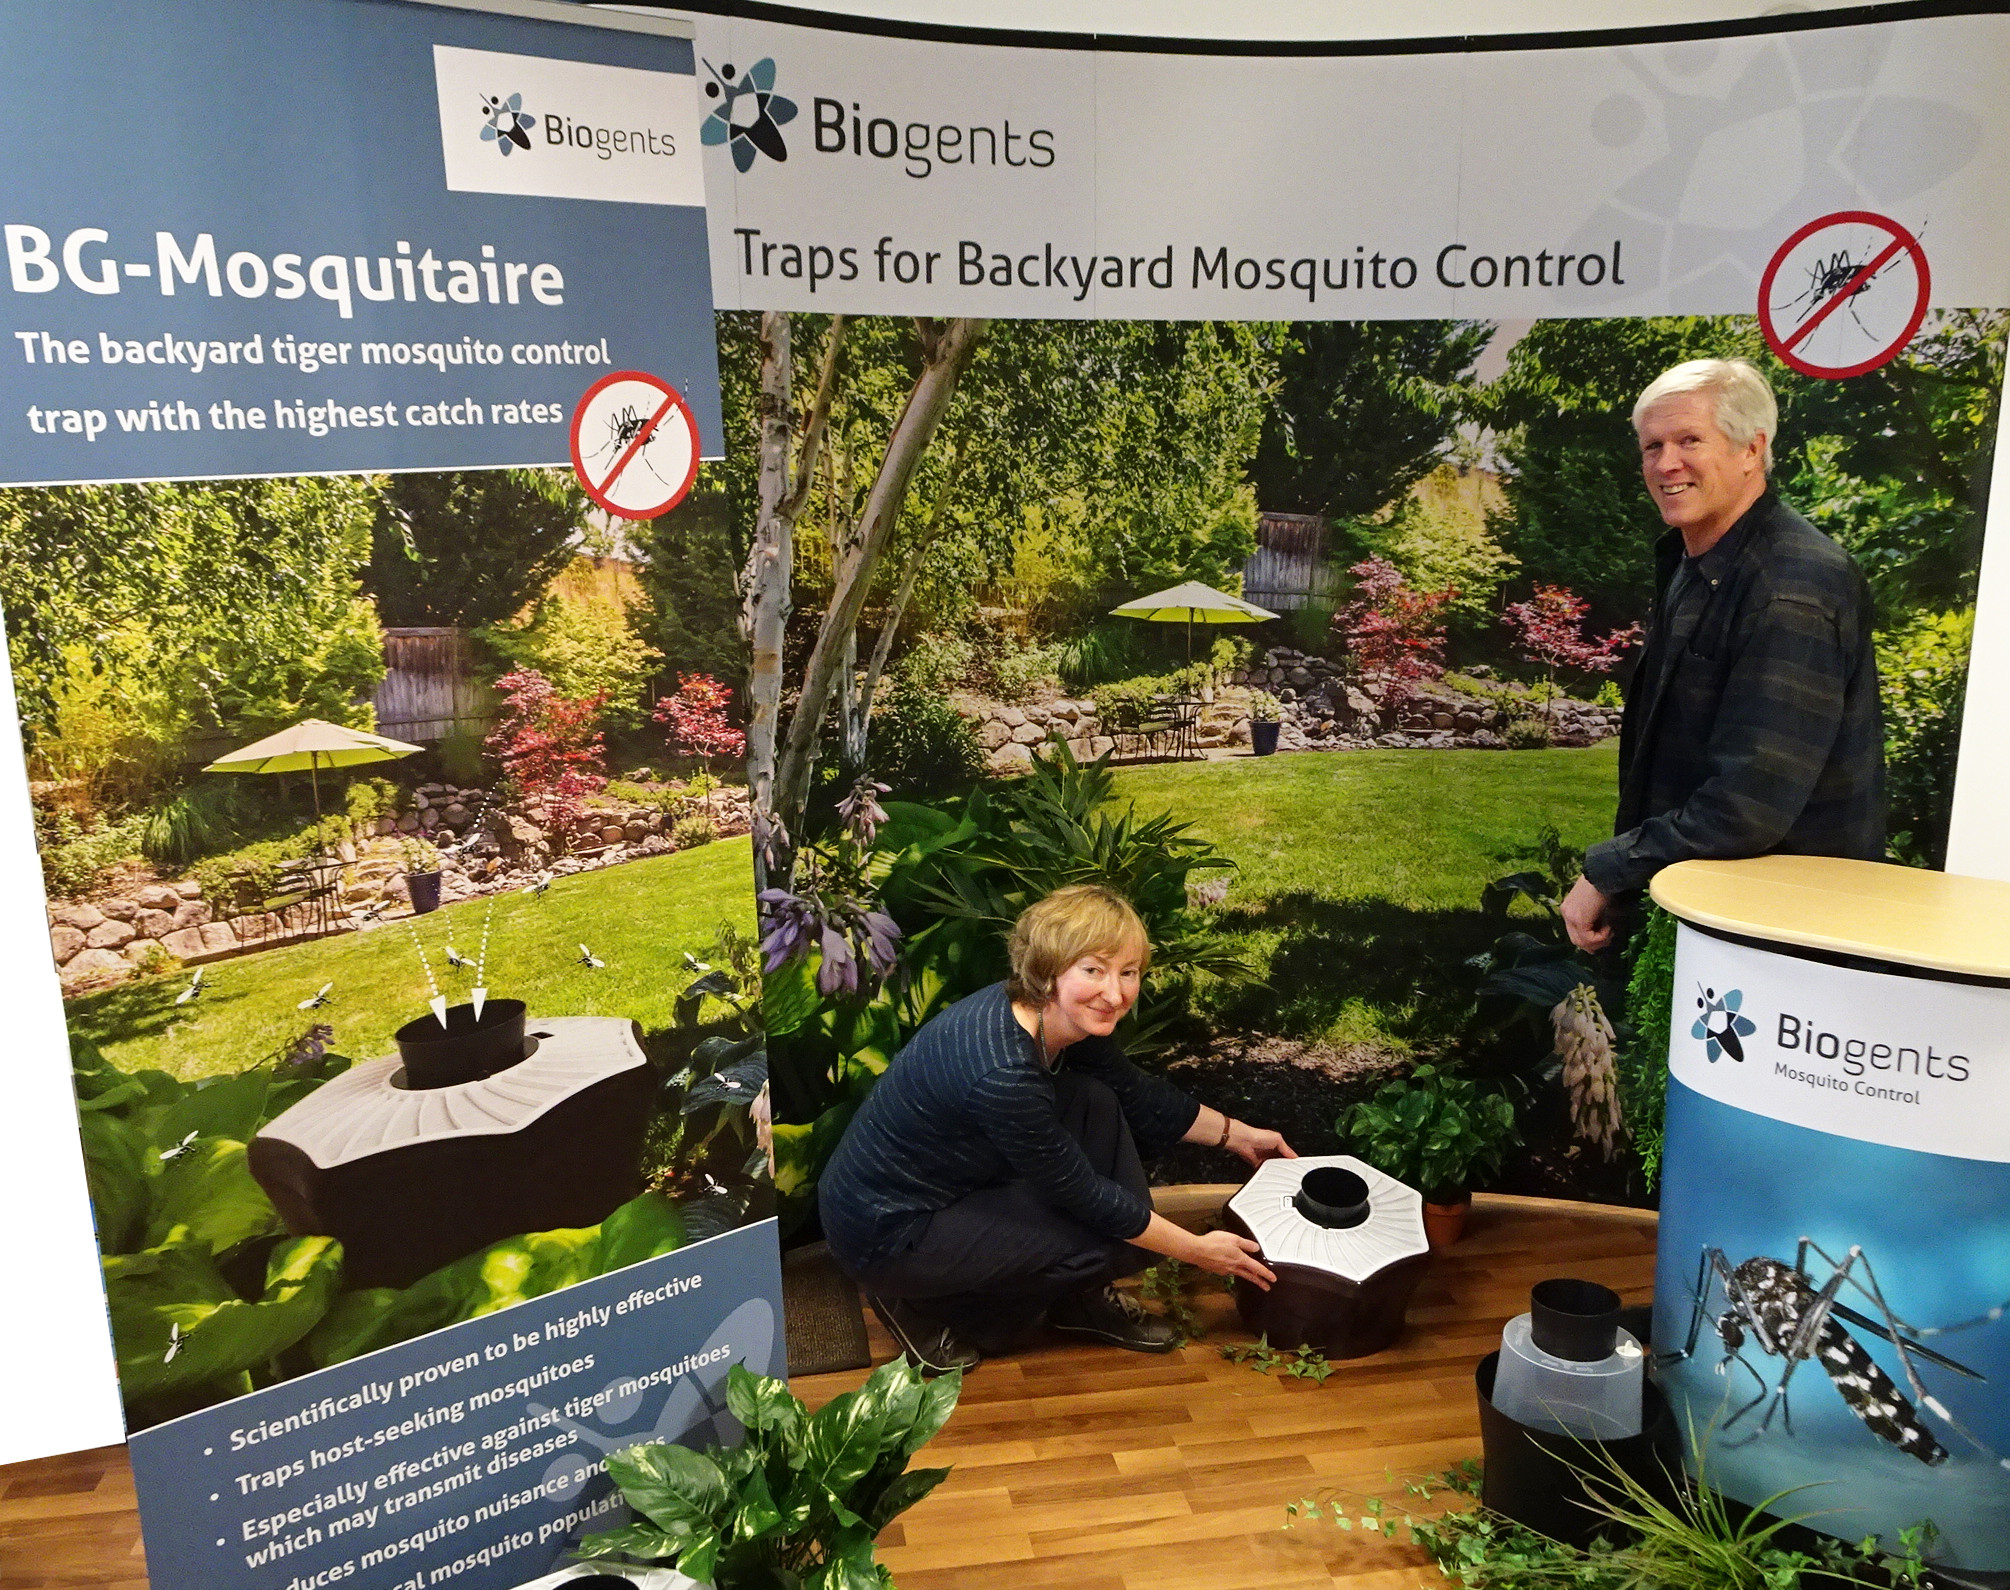 Biogents will be at the Remodeling & Garden Show in Chantilly, VA in Feb. 2018